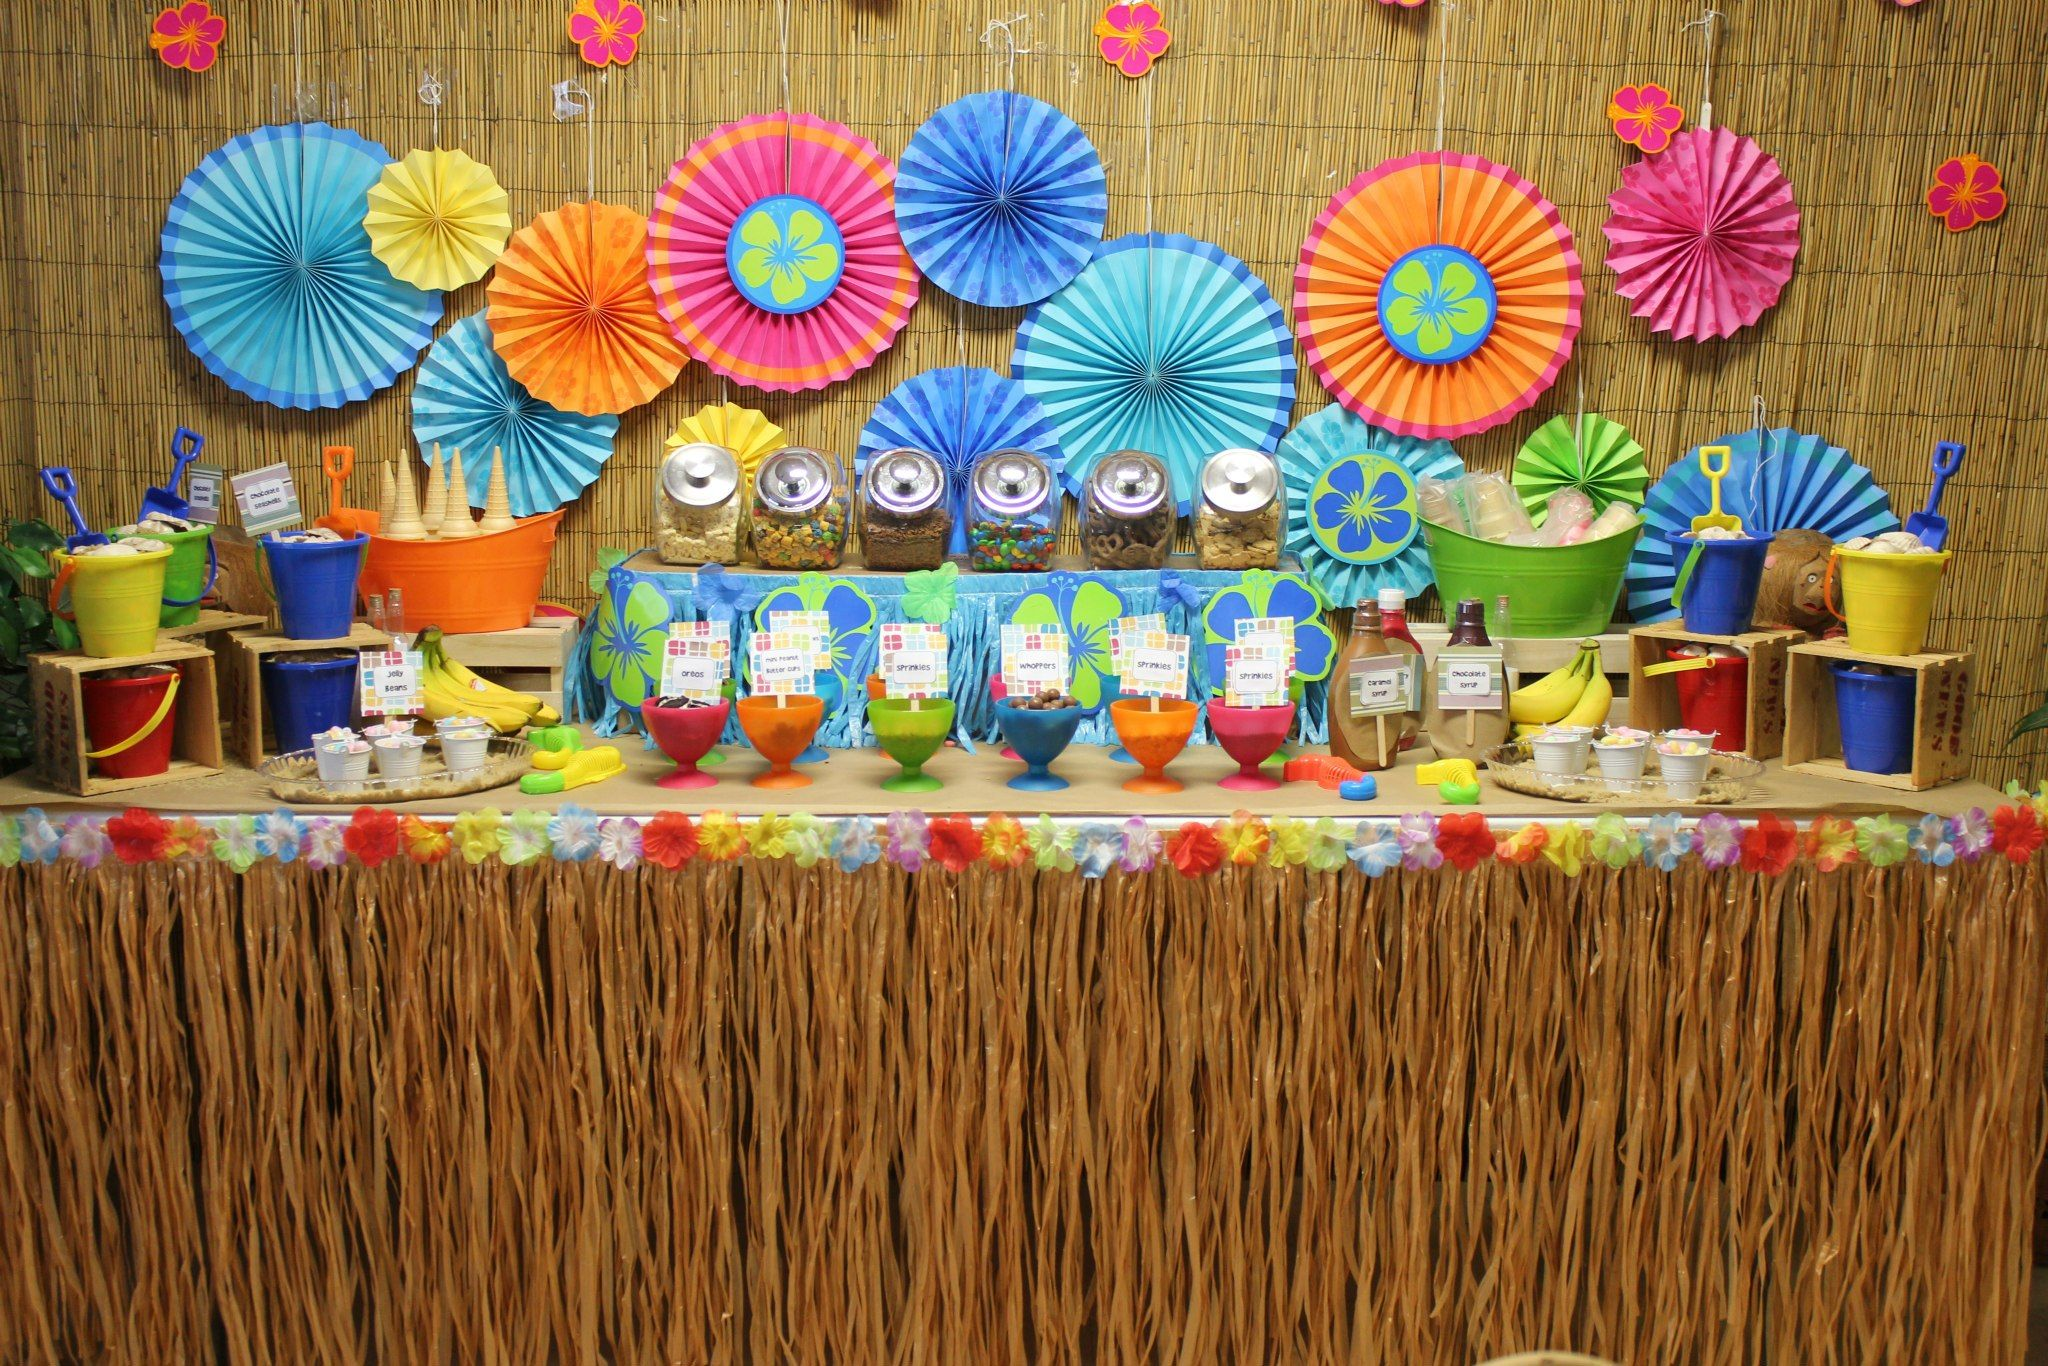 luau birthday party ideas share your favorite ice cream sundae